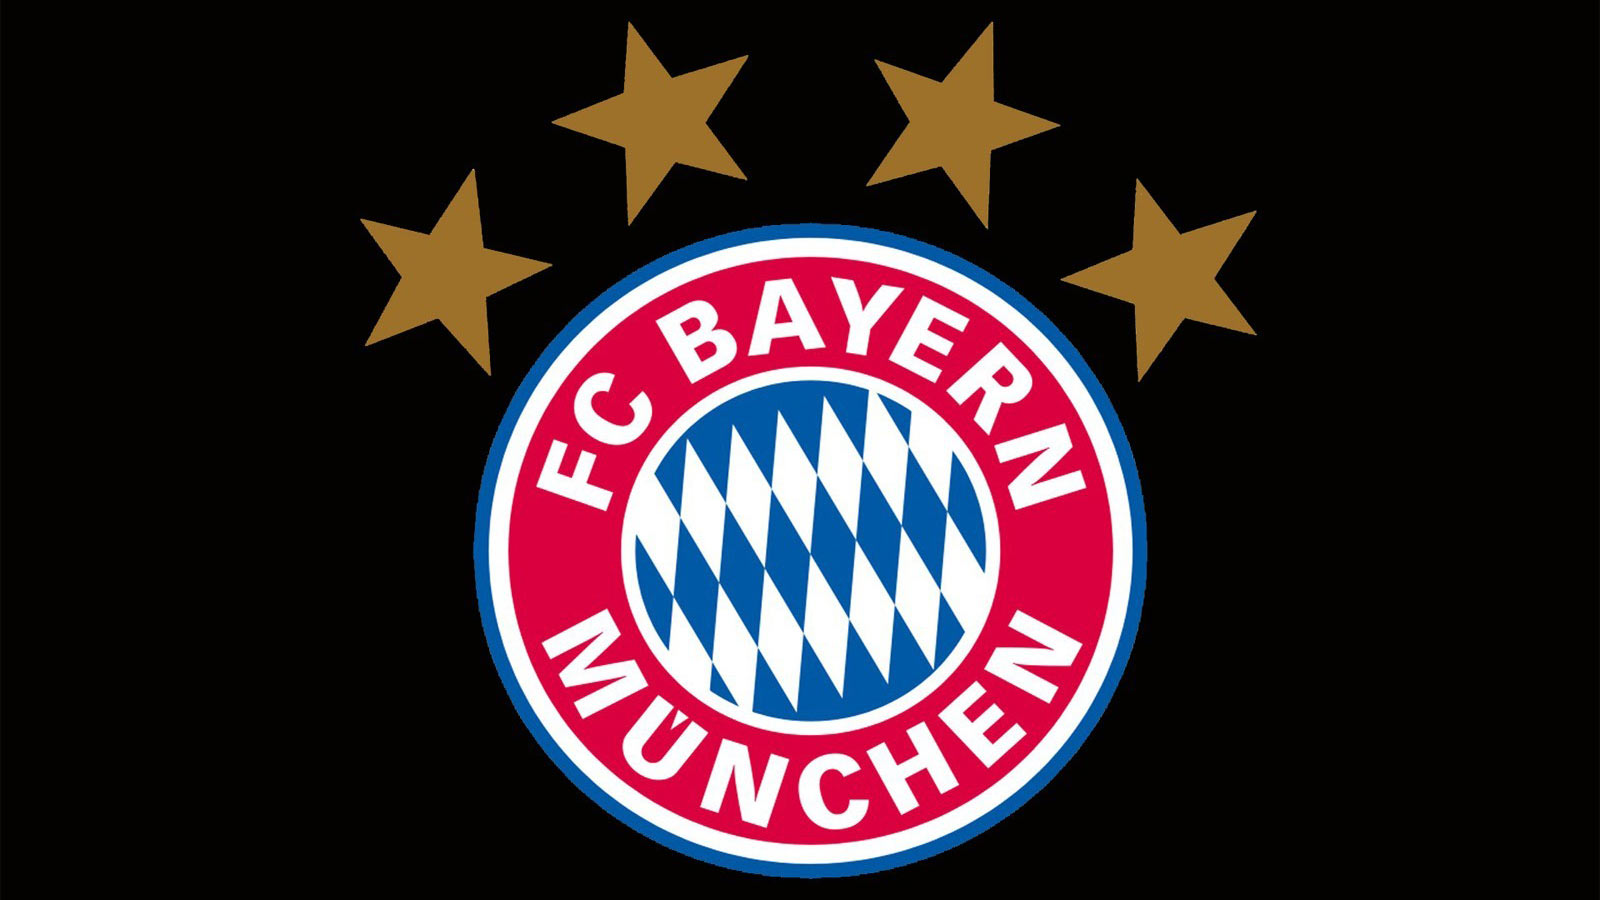 bayern munich logo wallpaper images. Black Bedroom Furniture Sets. Home Design Ideas